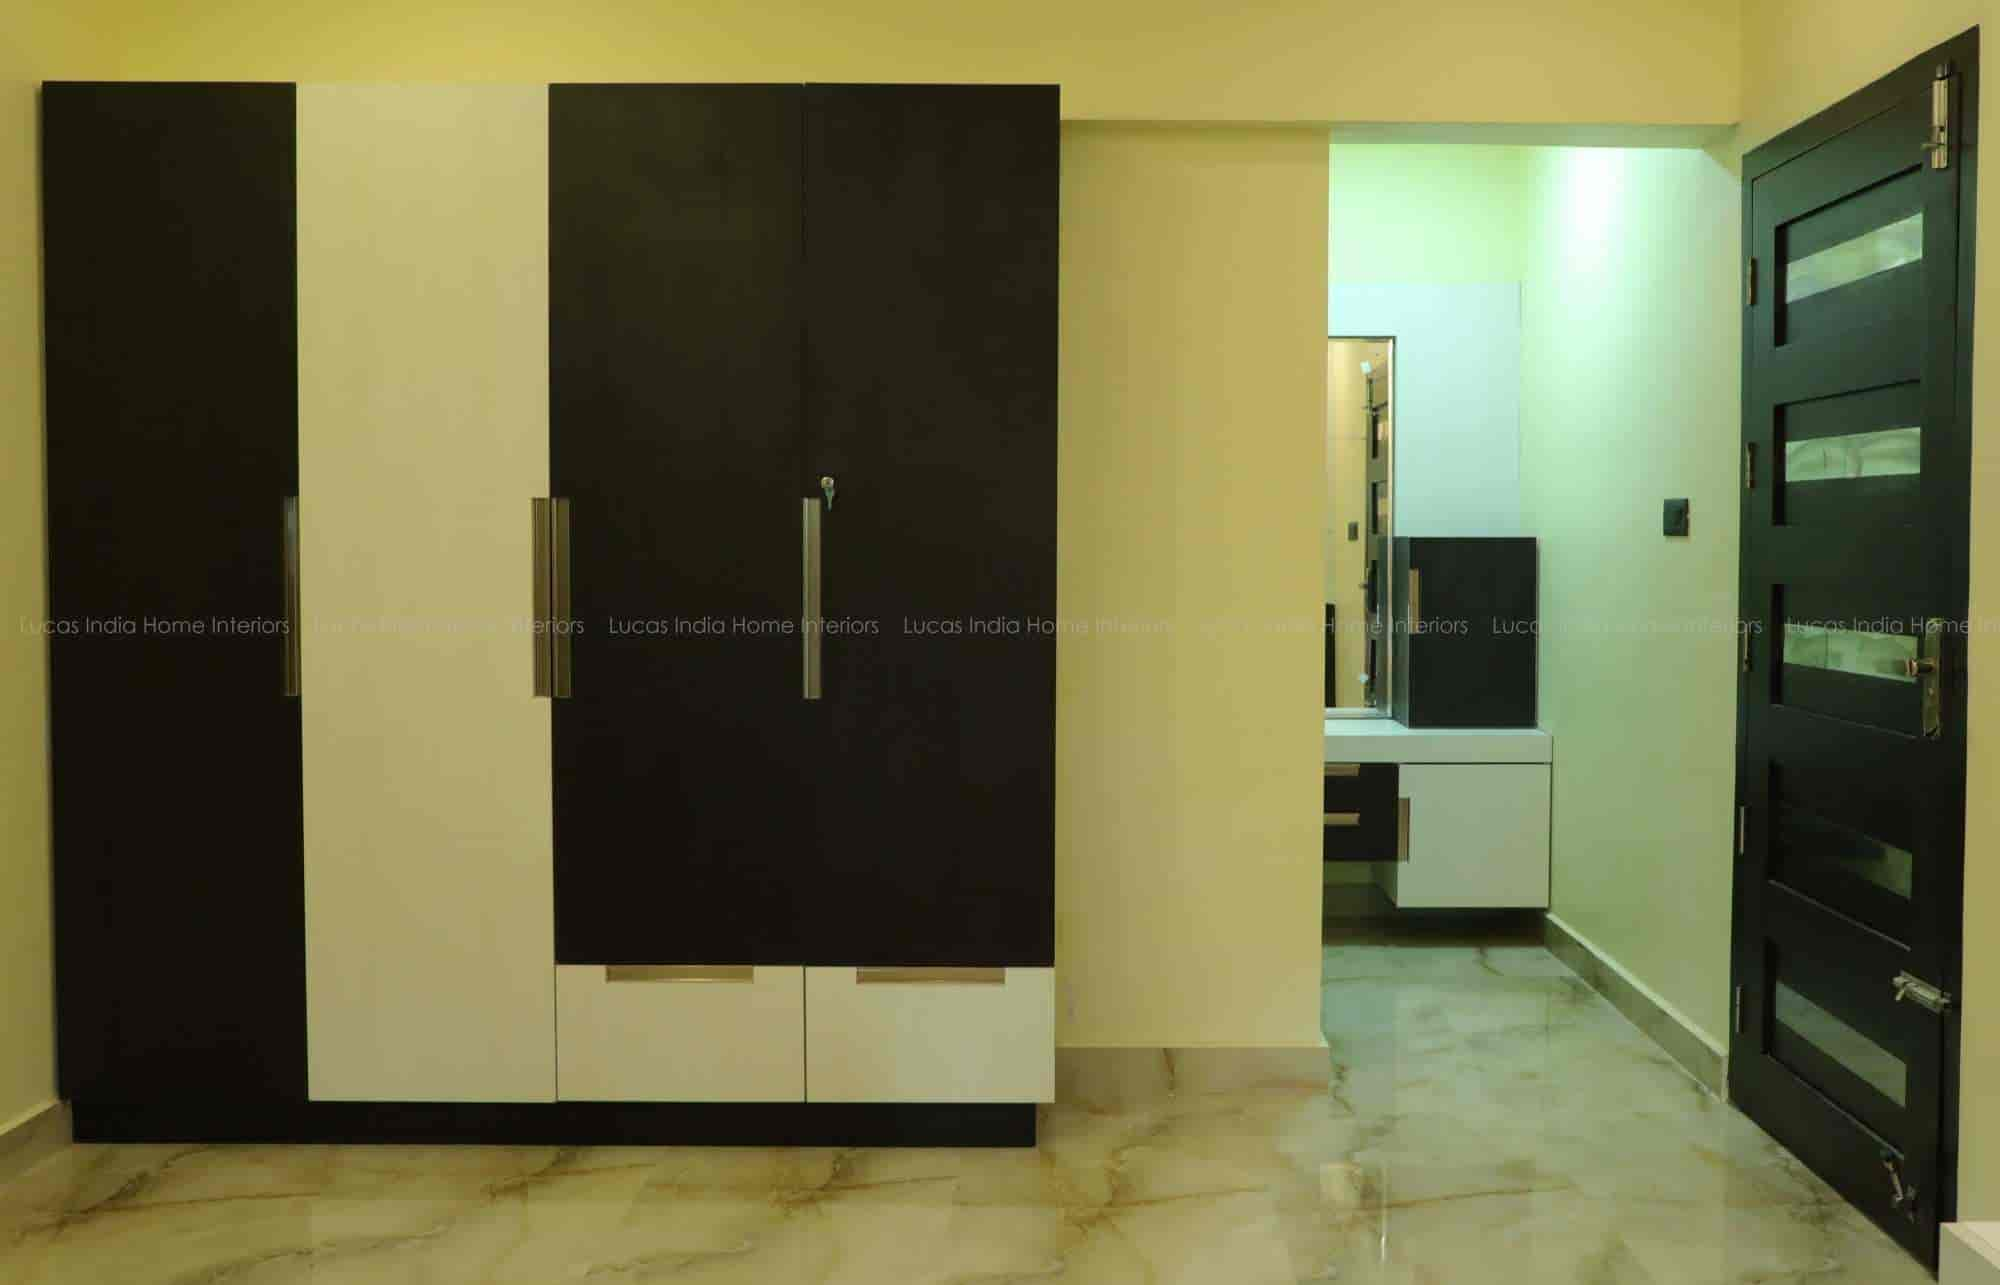 lucas india industries furniture and home interiors photos nalukody